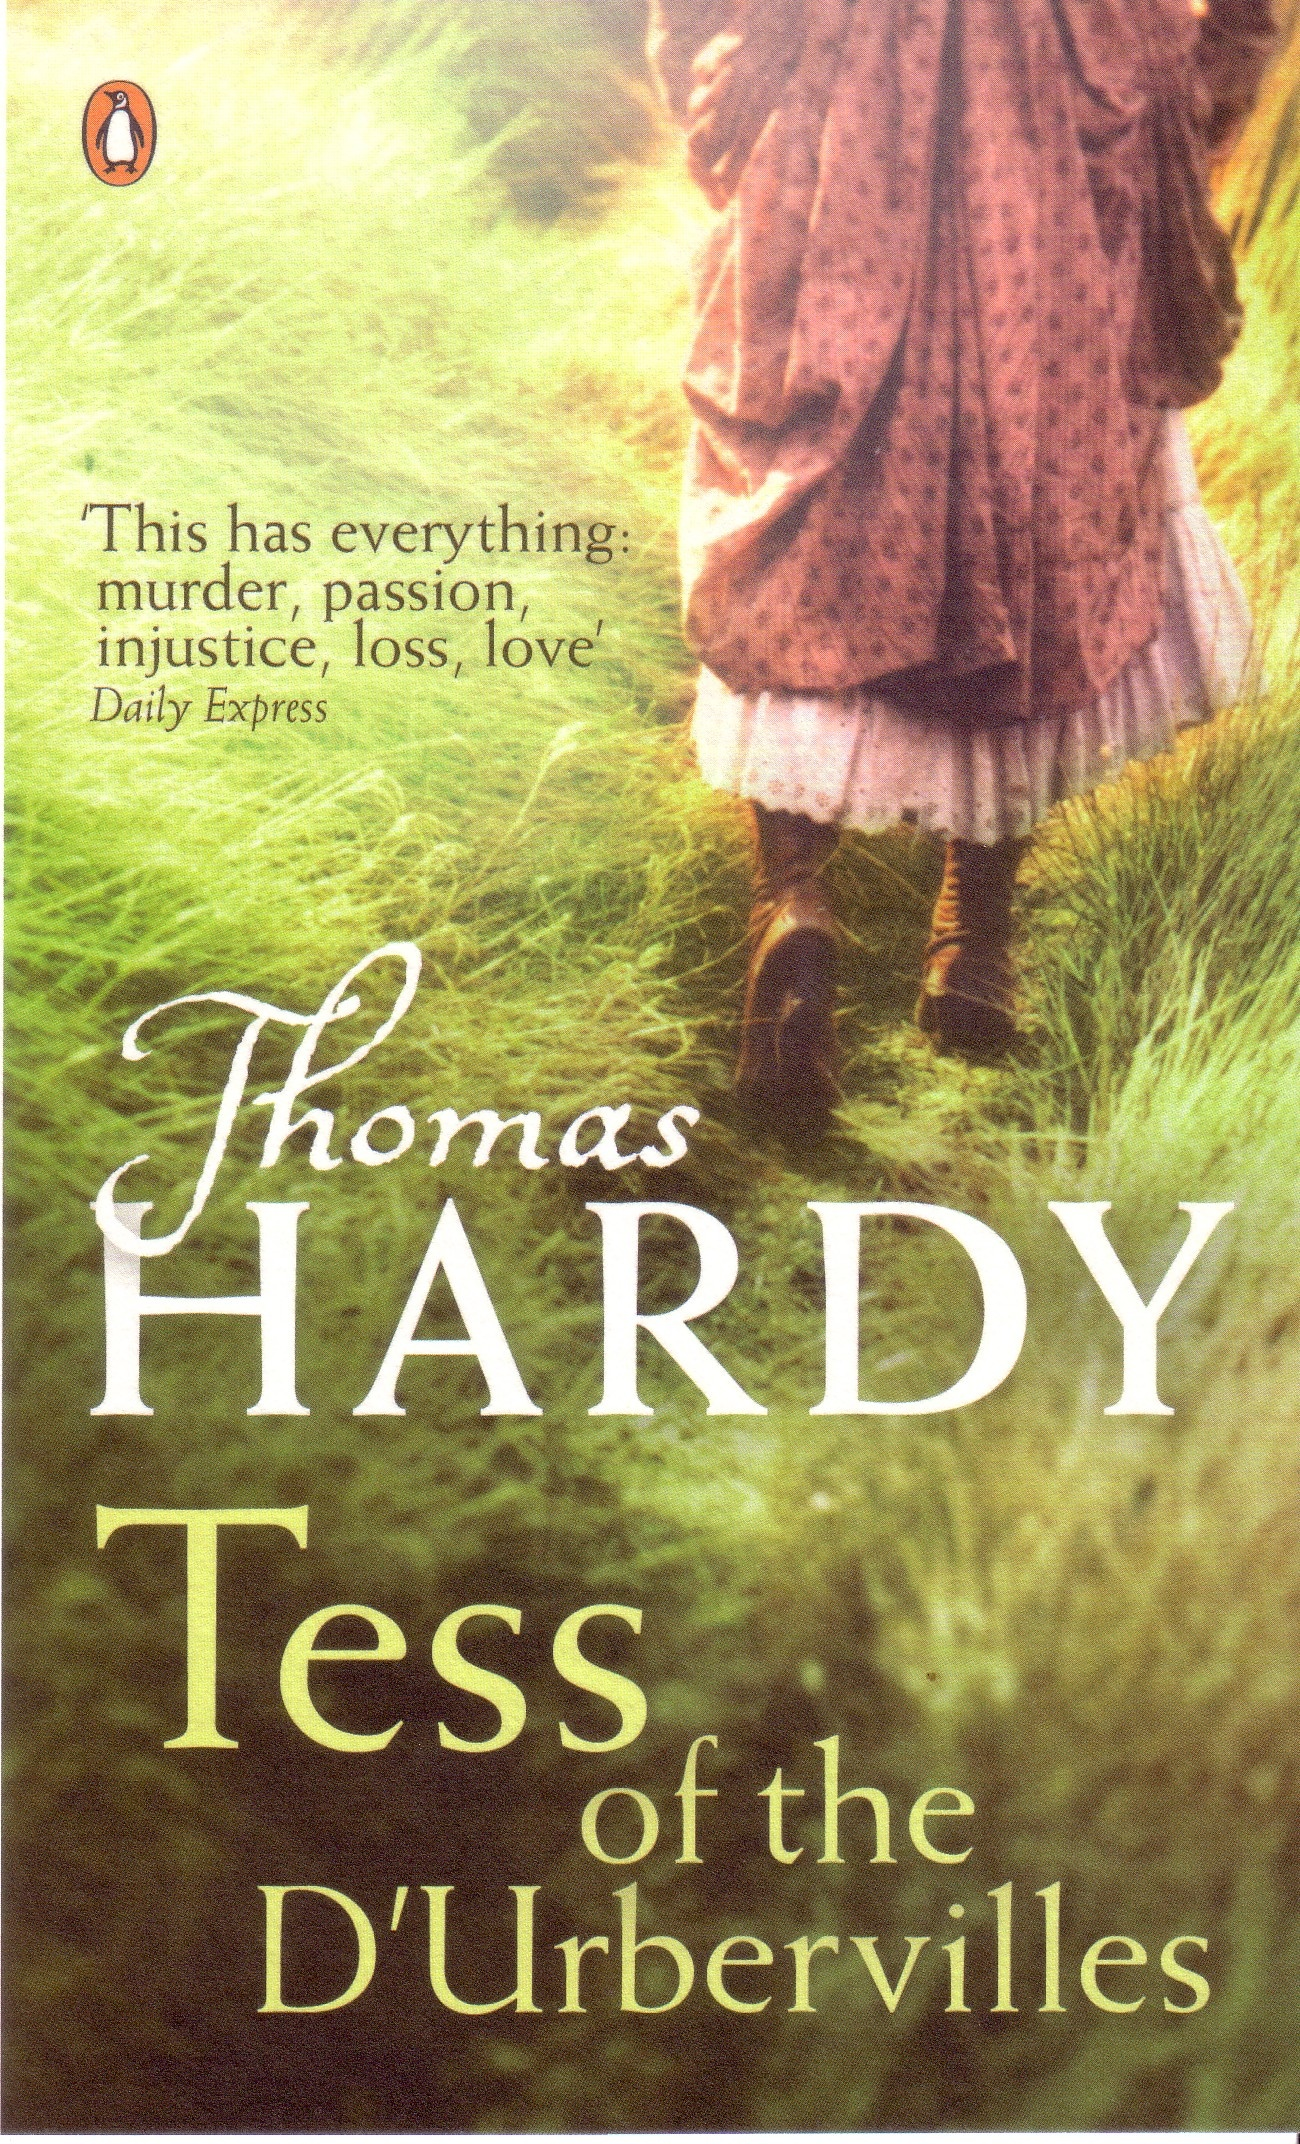 tess of the dubervilles essay Free essay on tess of the d'urbervilles - characterization available totally free at echeatcom, the largest free essay community.